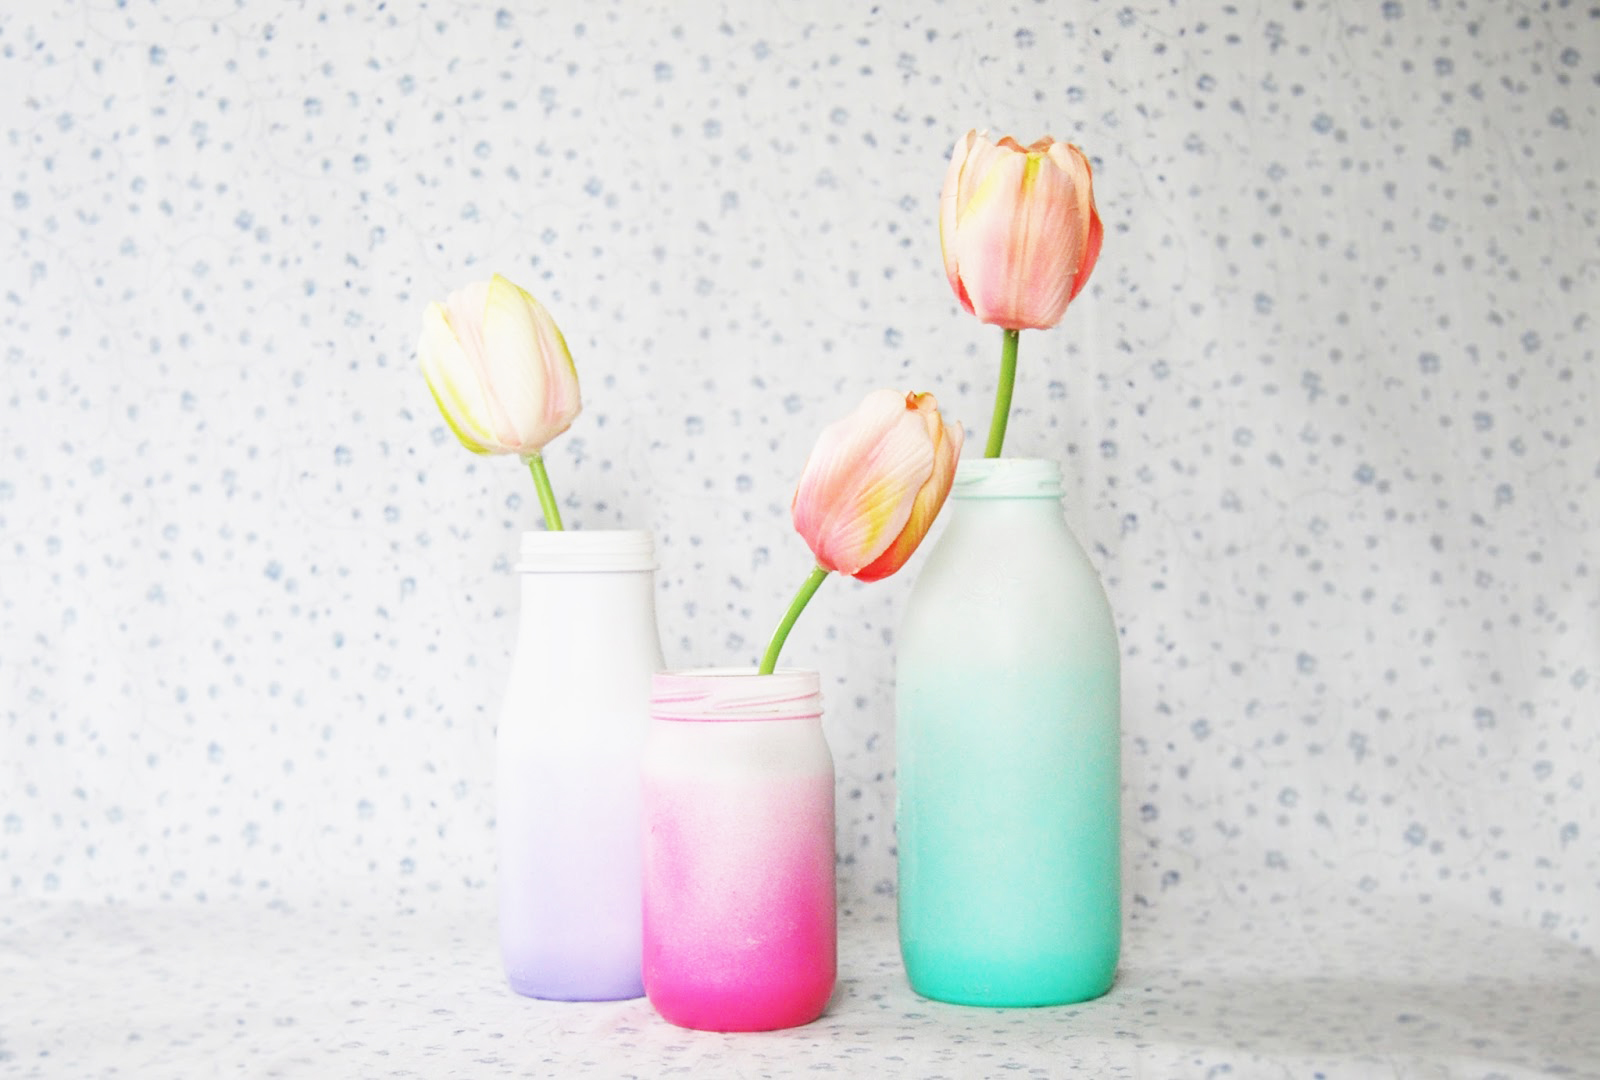 diy ombr spray painted bottles crafty pinterest